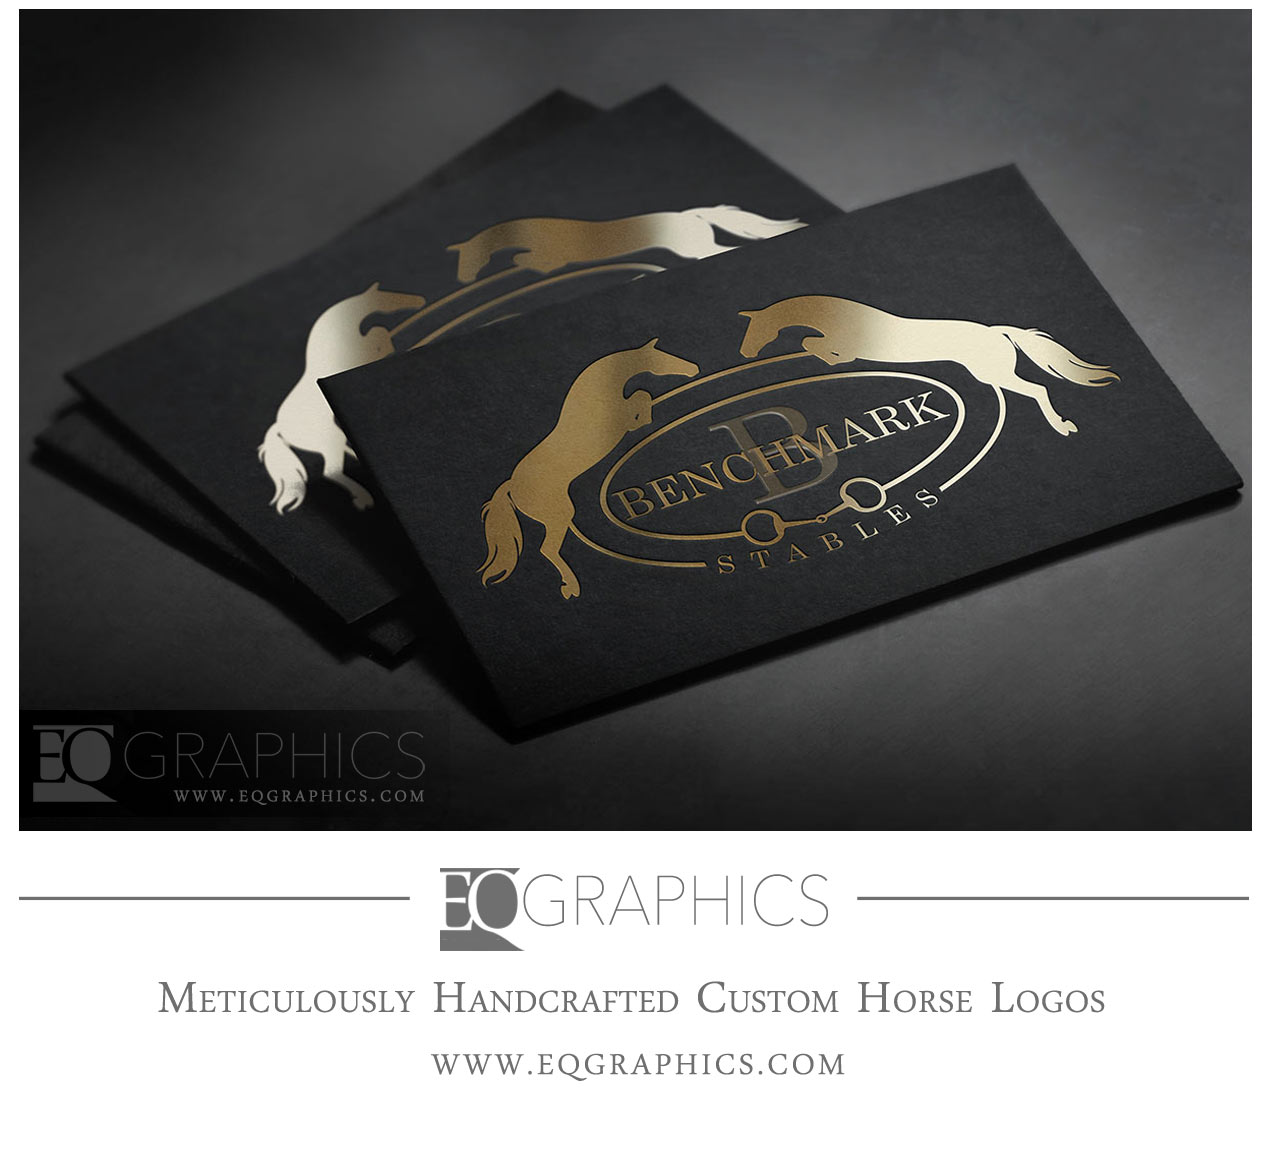 Benchmark Stables Hunter Jumper Equine Logo Design by EQ Graphics Horse Logos